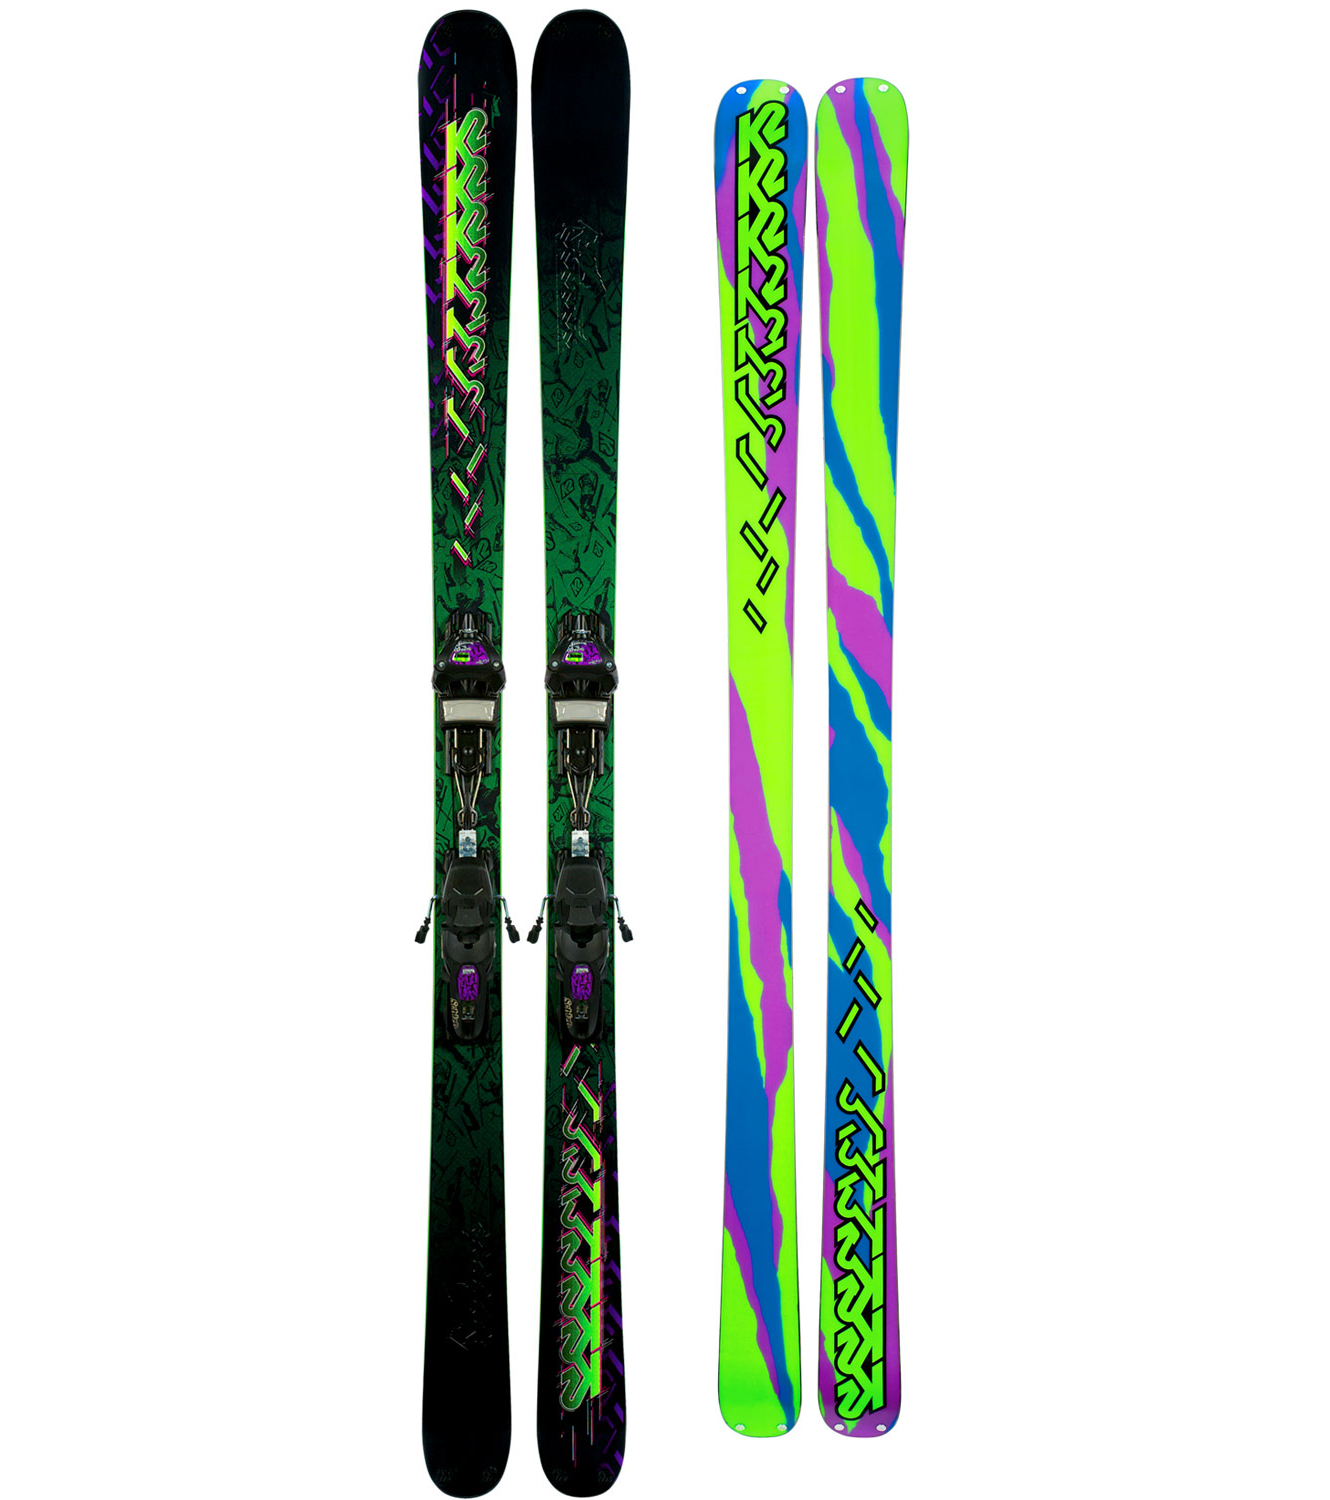 Ski The Extreme has the confidence and stability to rip any terrain and it has the torsional strength and durability to handle the toughest of landings and the most punishing abuse in the park. Emulate PK Hunder's double cork 1080 or just bust out some of the ol' moves on the topsheet. Either way, we'll be proud. Keep it Extreme.Key Features of The K2 Extreme Skis w/ Marker Griffon Schizofran Bindings: Performance: Powder: 40% Park: 60% Sizes: 159, 164, 169, 174, 179, 184 Radius: 21m@ 179/Standard Taper Construction: ABSorb Hybrid Sidewall Core: Fir Binding Options: SchizoFrantic or Flat Stealth Black Rivet Triaxial Braiding Most Badass Display of Aerial Trickery Ever Placed on a Topsheet - $550.95